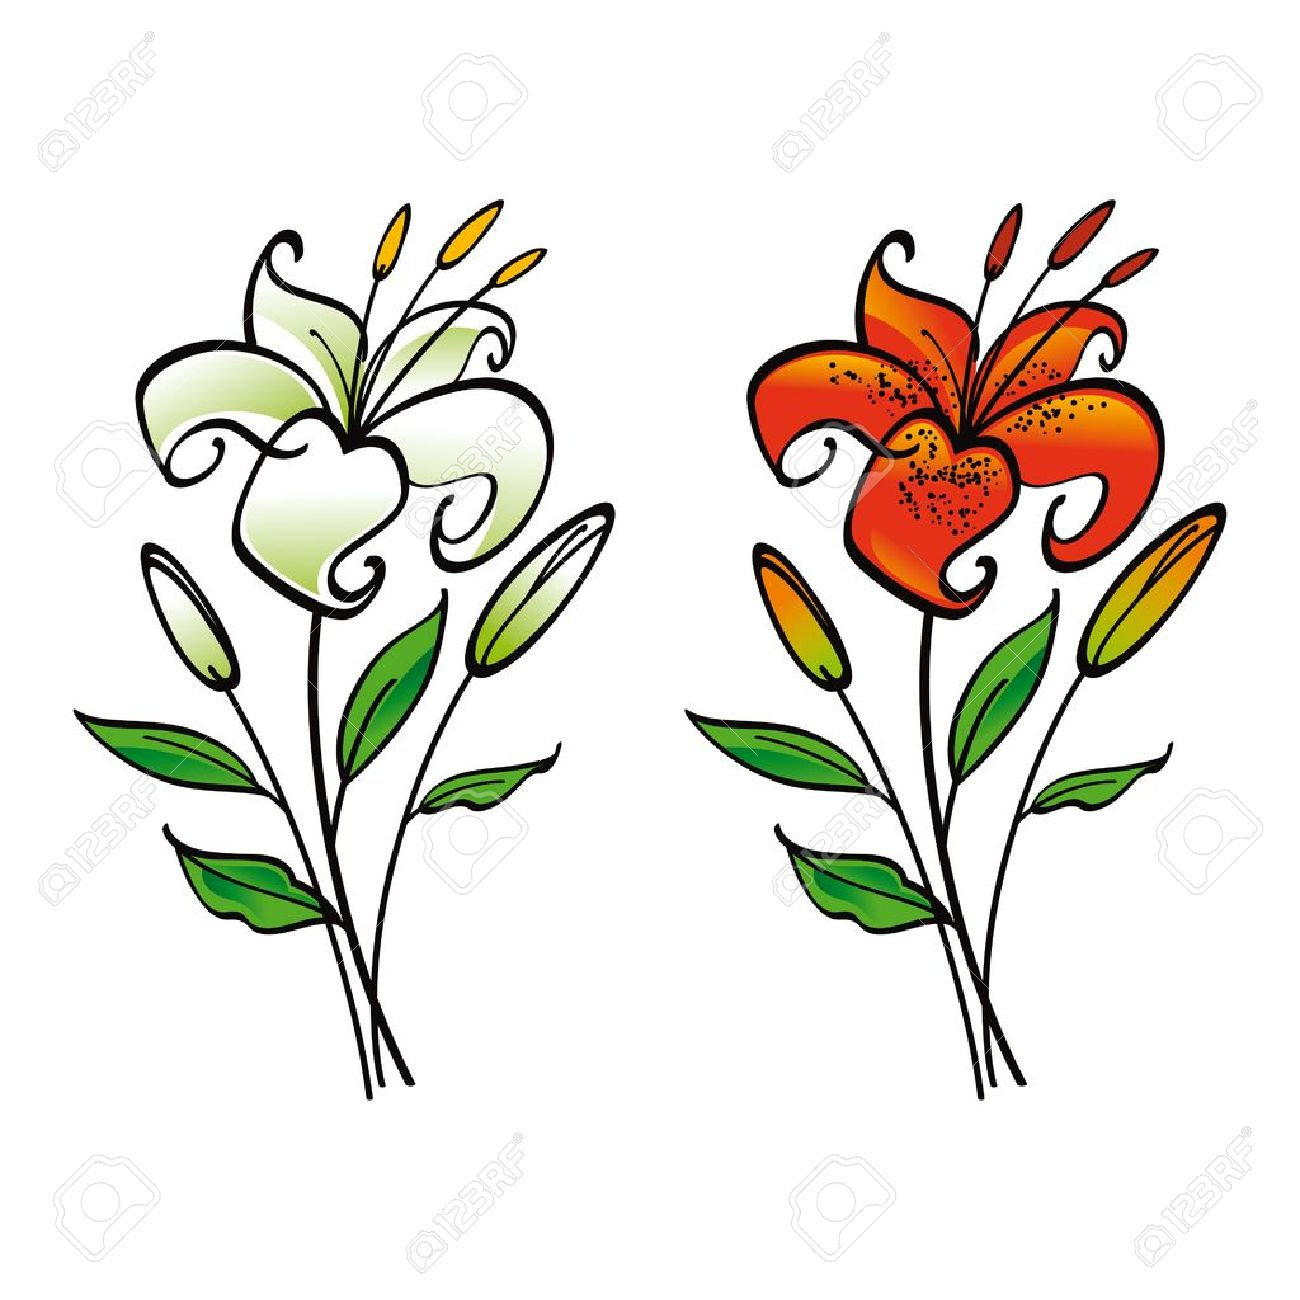 Lily flower clipart free download best lily flower clipart on 1300x1300 oriental clipart lily flower izmirmasajfo